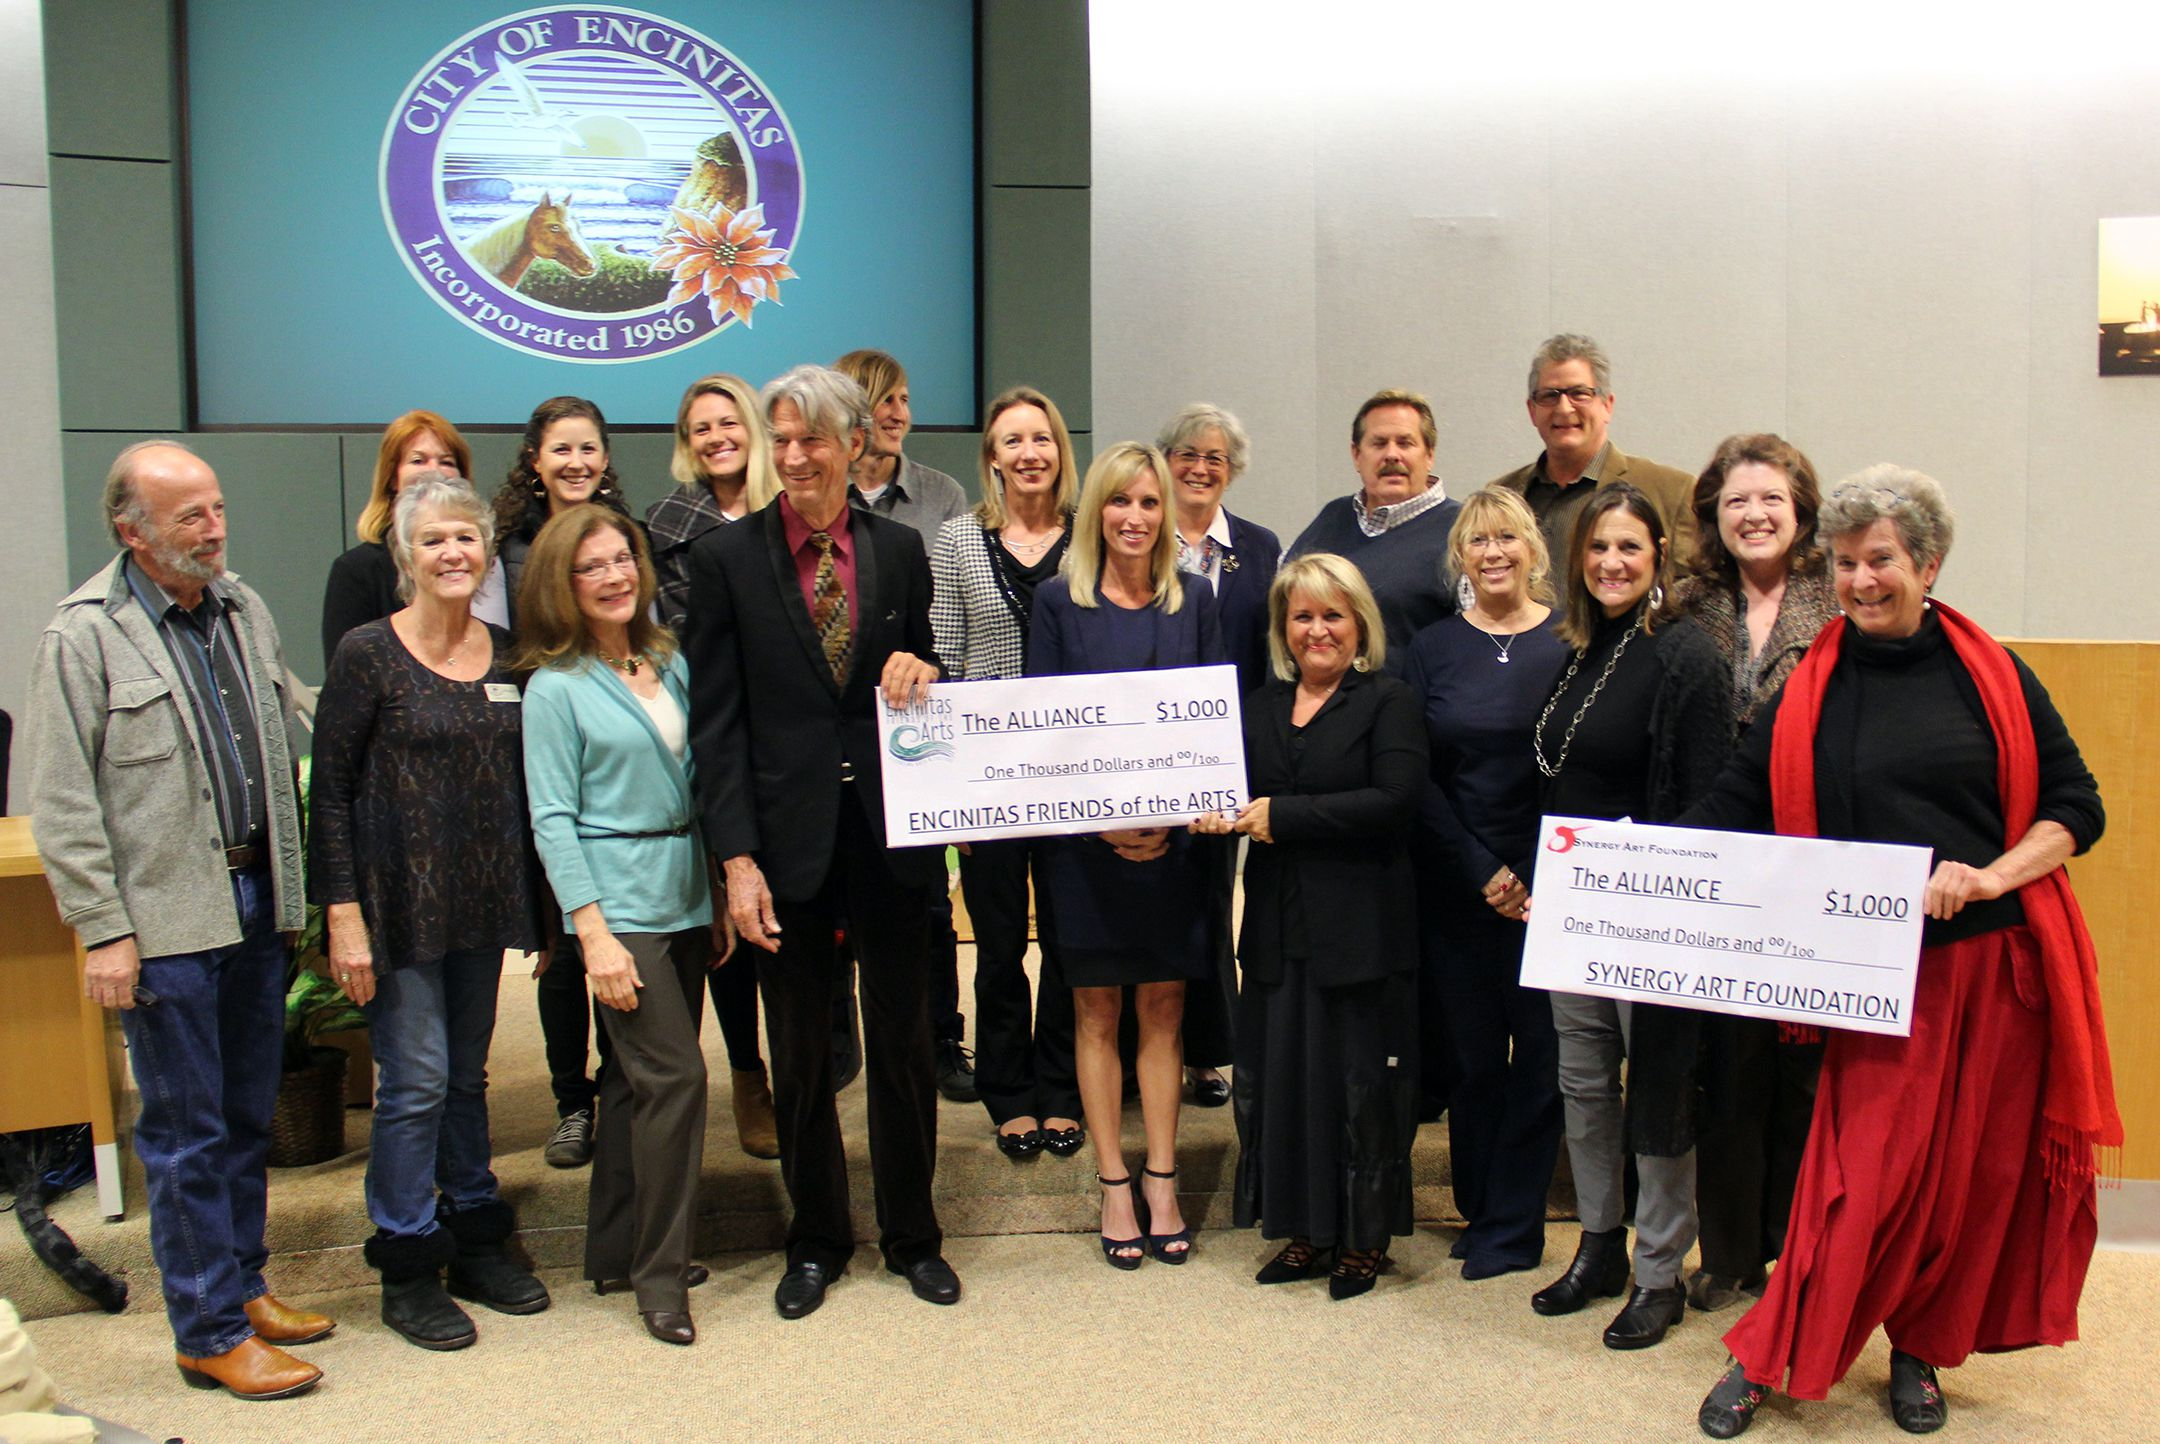 Encinitas Friends of the Arts and the Synergy Art Foundation each donated $1000 to the Encinitas Arts, Culture and Ecology Alliance as a demonstration of support for the Alliance's efforts to rehabilitate and administer the Pacific View property. Pictured at the presentation during the January 27 Encinitas City Council meeting are (front row, l. to r.) 101 Artists' Colony President Danny Salzhandler, Encinitas Historical Society President Carolyn Cope, 101 Artists' Colony Board Member Kay Colvin, Alliance President Garth Murphy, Mayor Kristin Gaspar, Encinitas Friends of the Arts President Naimeh Tanha, Friends of the Arts' Laura Diede, Friends of the Arts' Deanne Sabeck, Synergy Art Foundation's Patricia Friescher, Synergy Art Foundation's Irène de Watteville (back row, l. to r.) Encinitas 101 MainStreet Association Executive Director Thora Guthrie, musician/activist Ashley Mazanec, Alliance attorney Trisha Hilder, Alliance Vice-President Jon Humphrey, Council Member Catherine Blakespear, Deputy Mayor Lisa Shaffer, Council Member Mark Muir, and Council Member Tony Kranz.